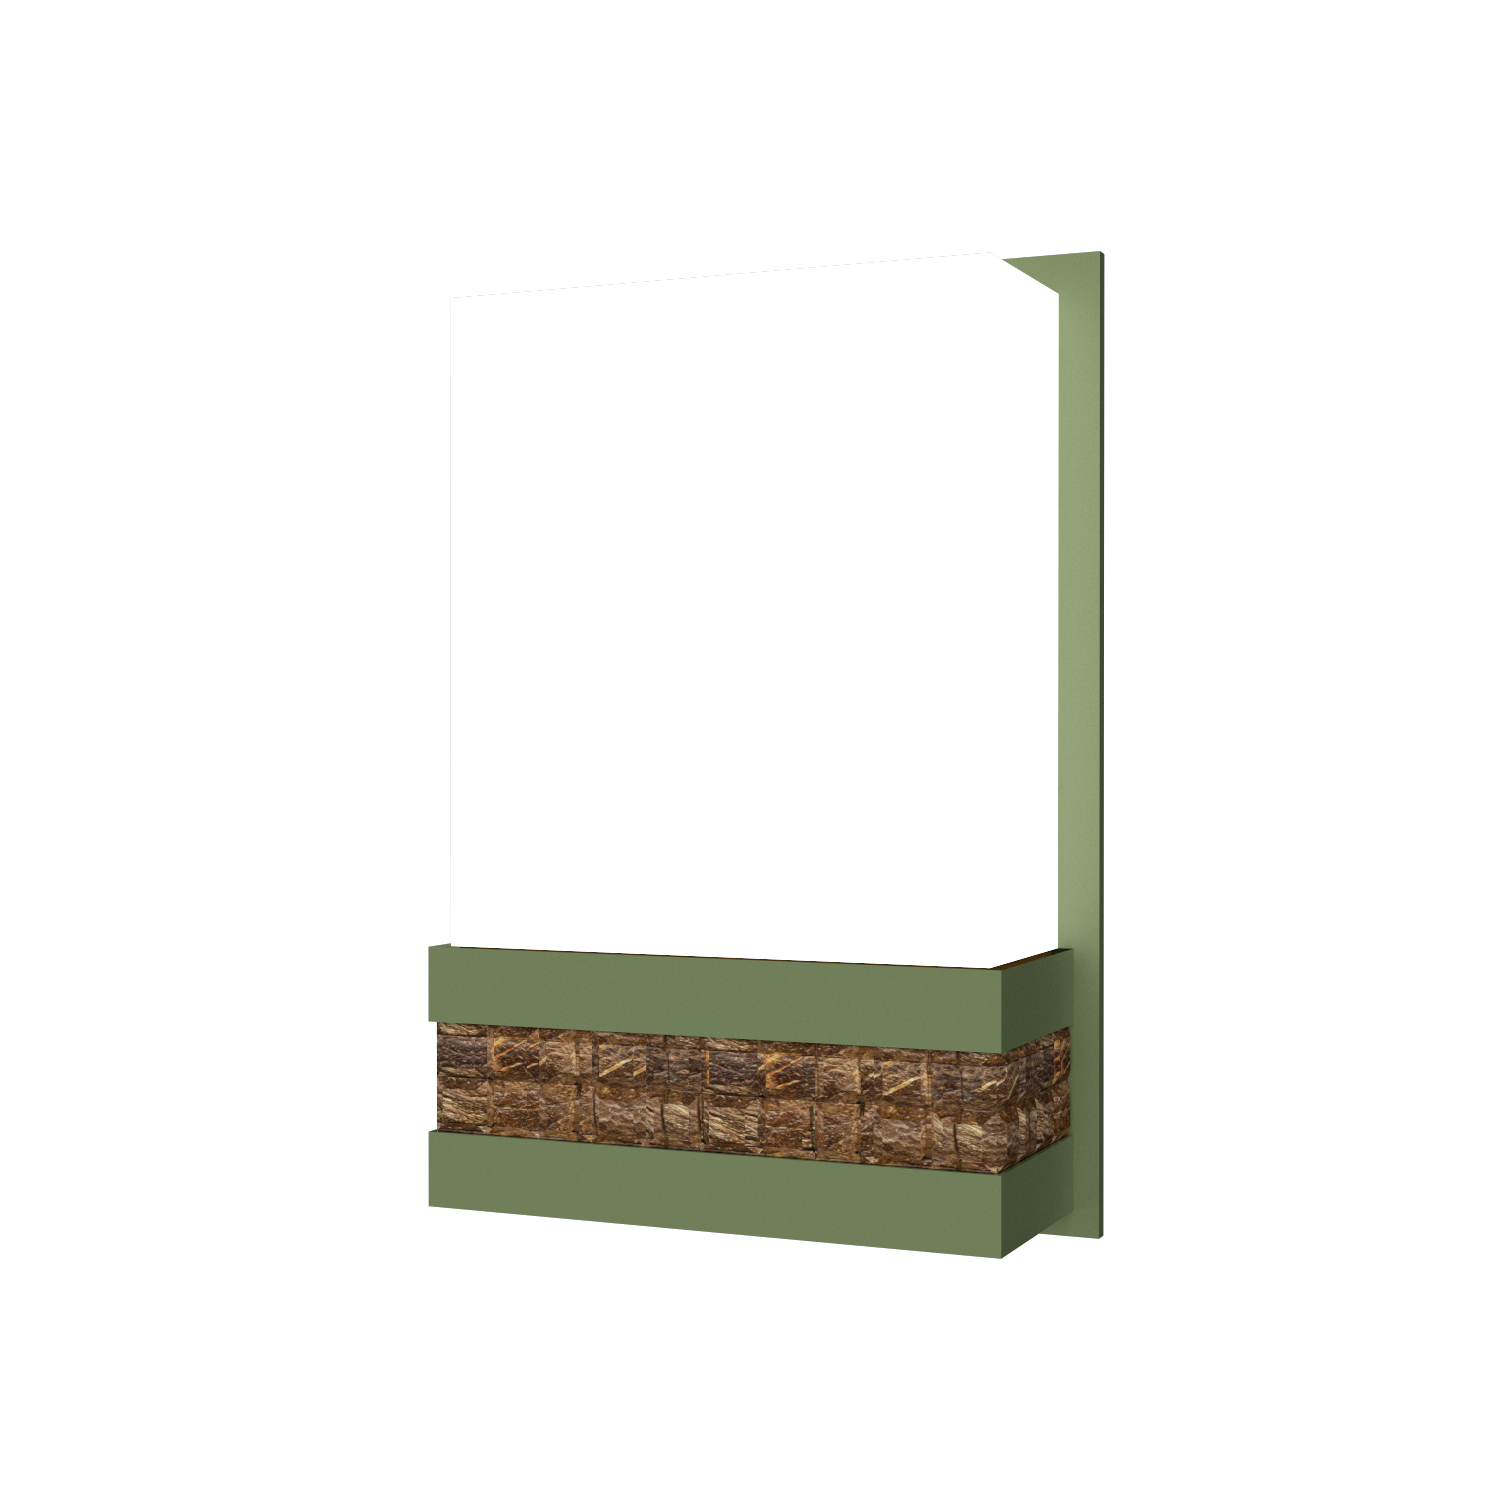 Wall Lamp Accord Pastilhada 443 - Pastilhada Line Accord Lighting | 30. Olive Green